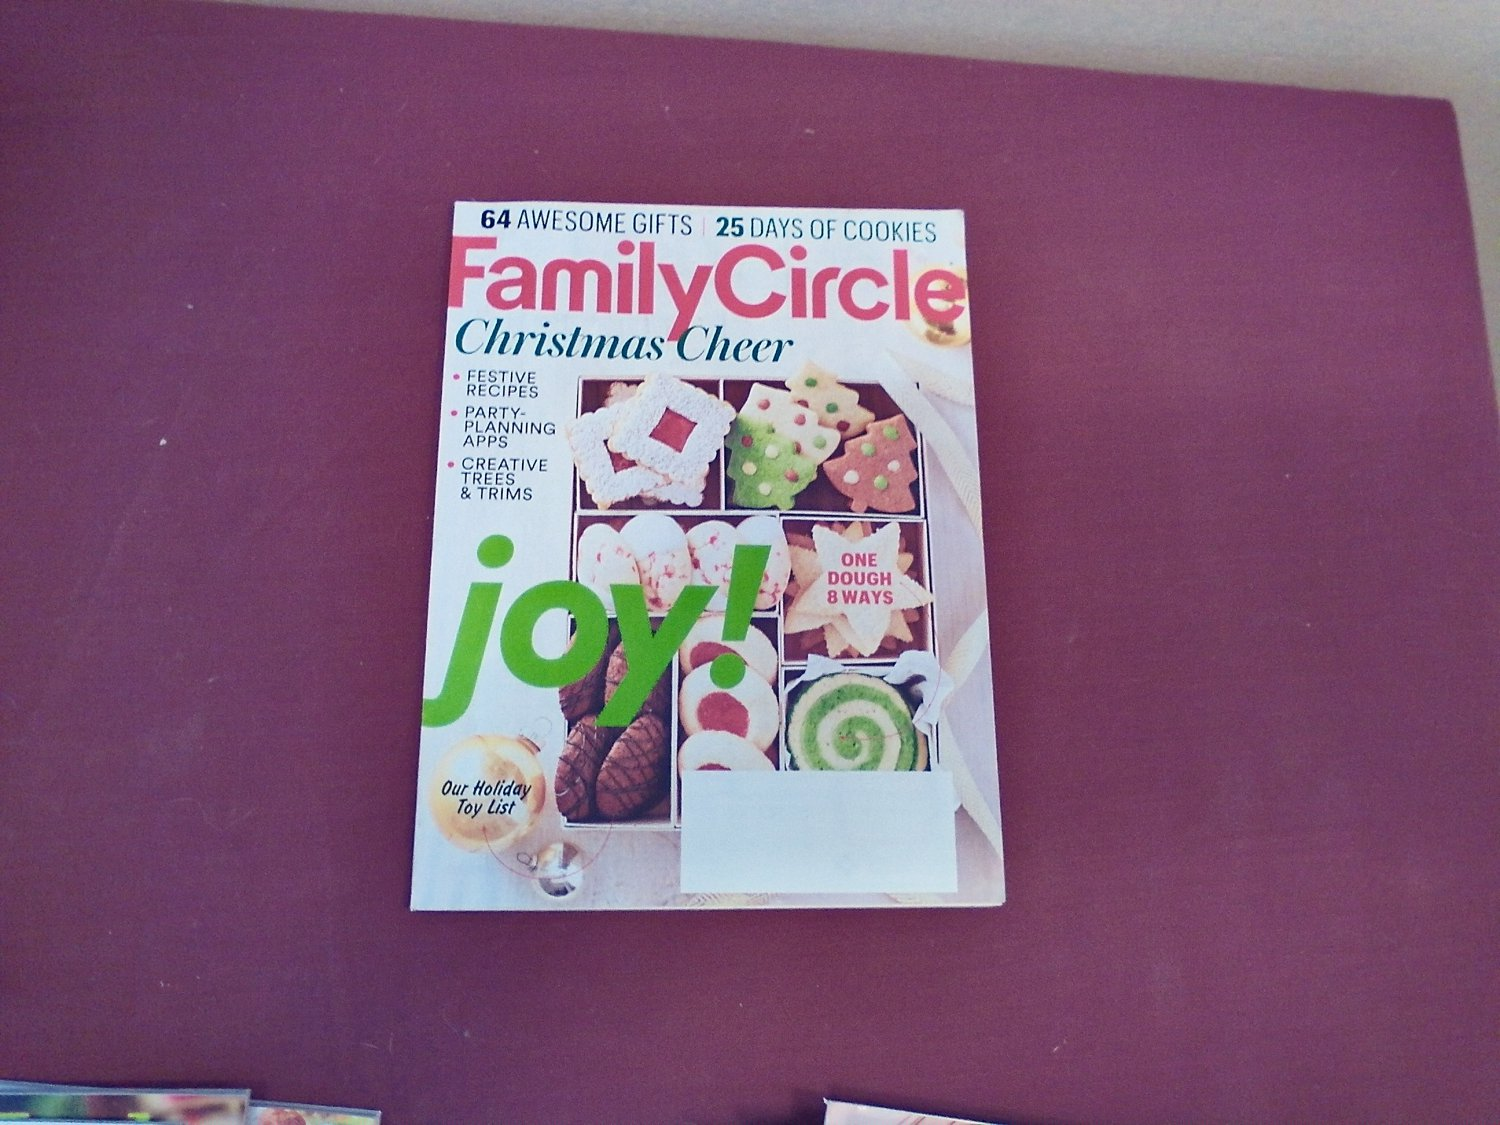 Family Circle Magazine December 2016 Volume 129 Number 12 - Christmas Cheer